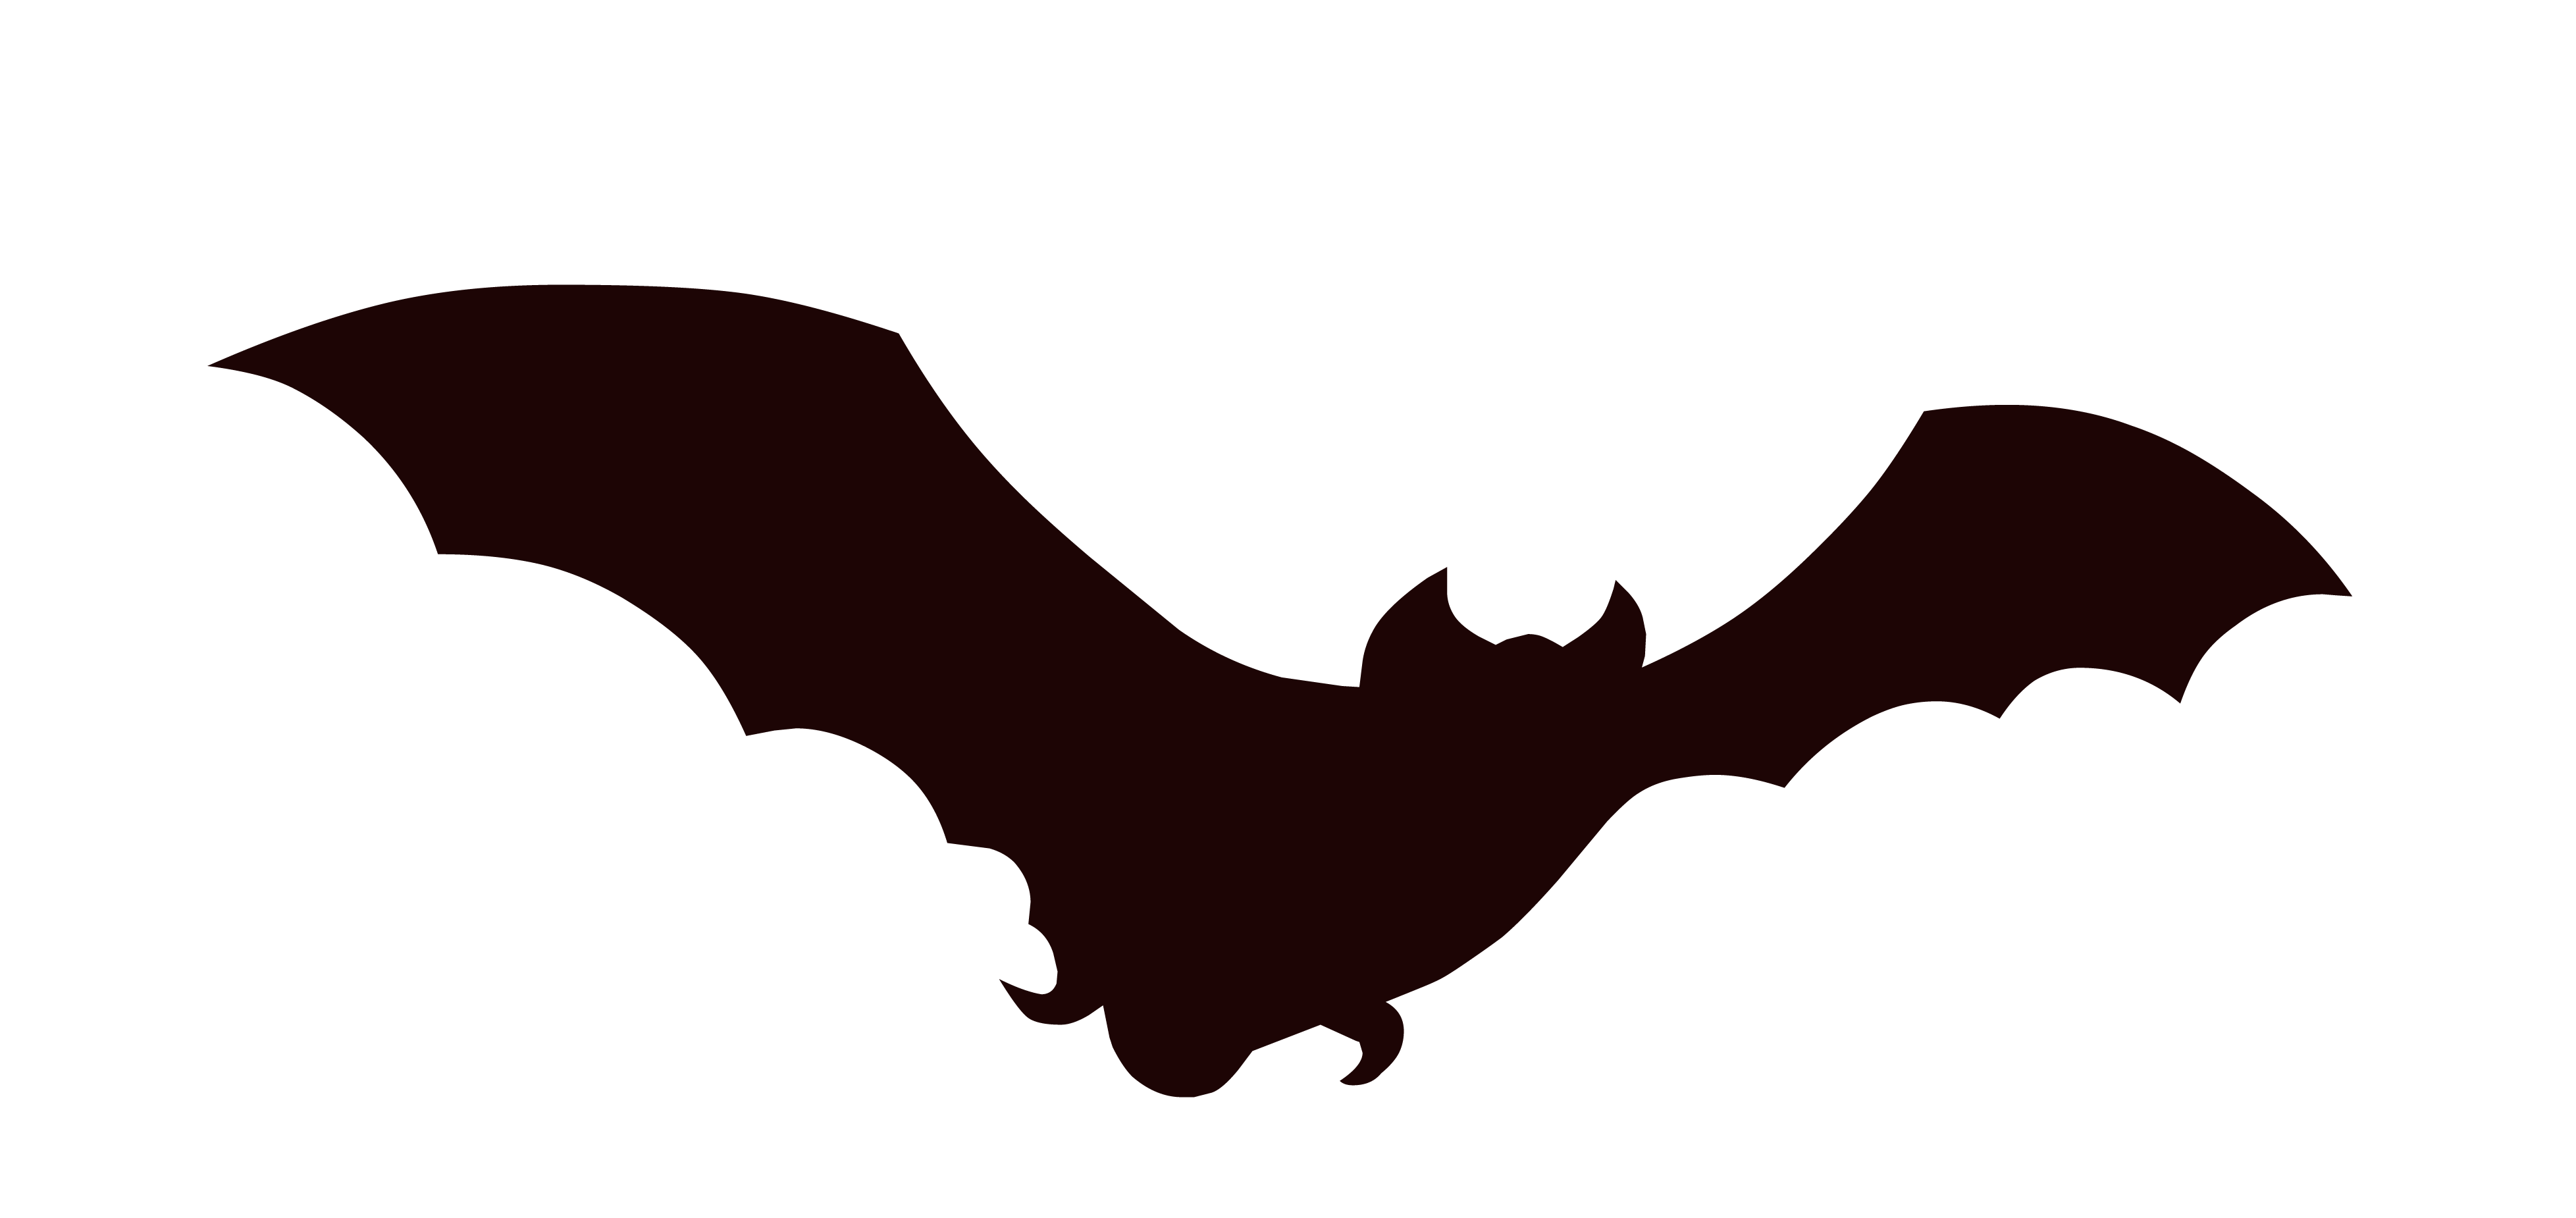 1850 clipart clip freeuse library Bat Animation Cartoon Clip art - bat png download - 3913*1850 - Free ... clip freeuse library